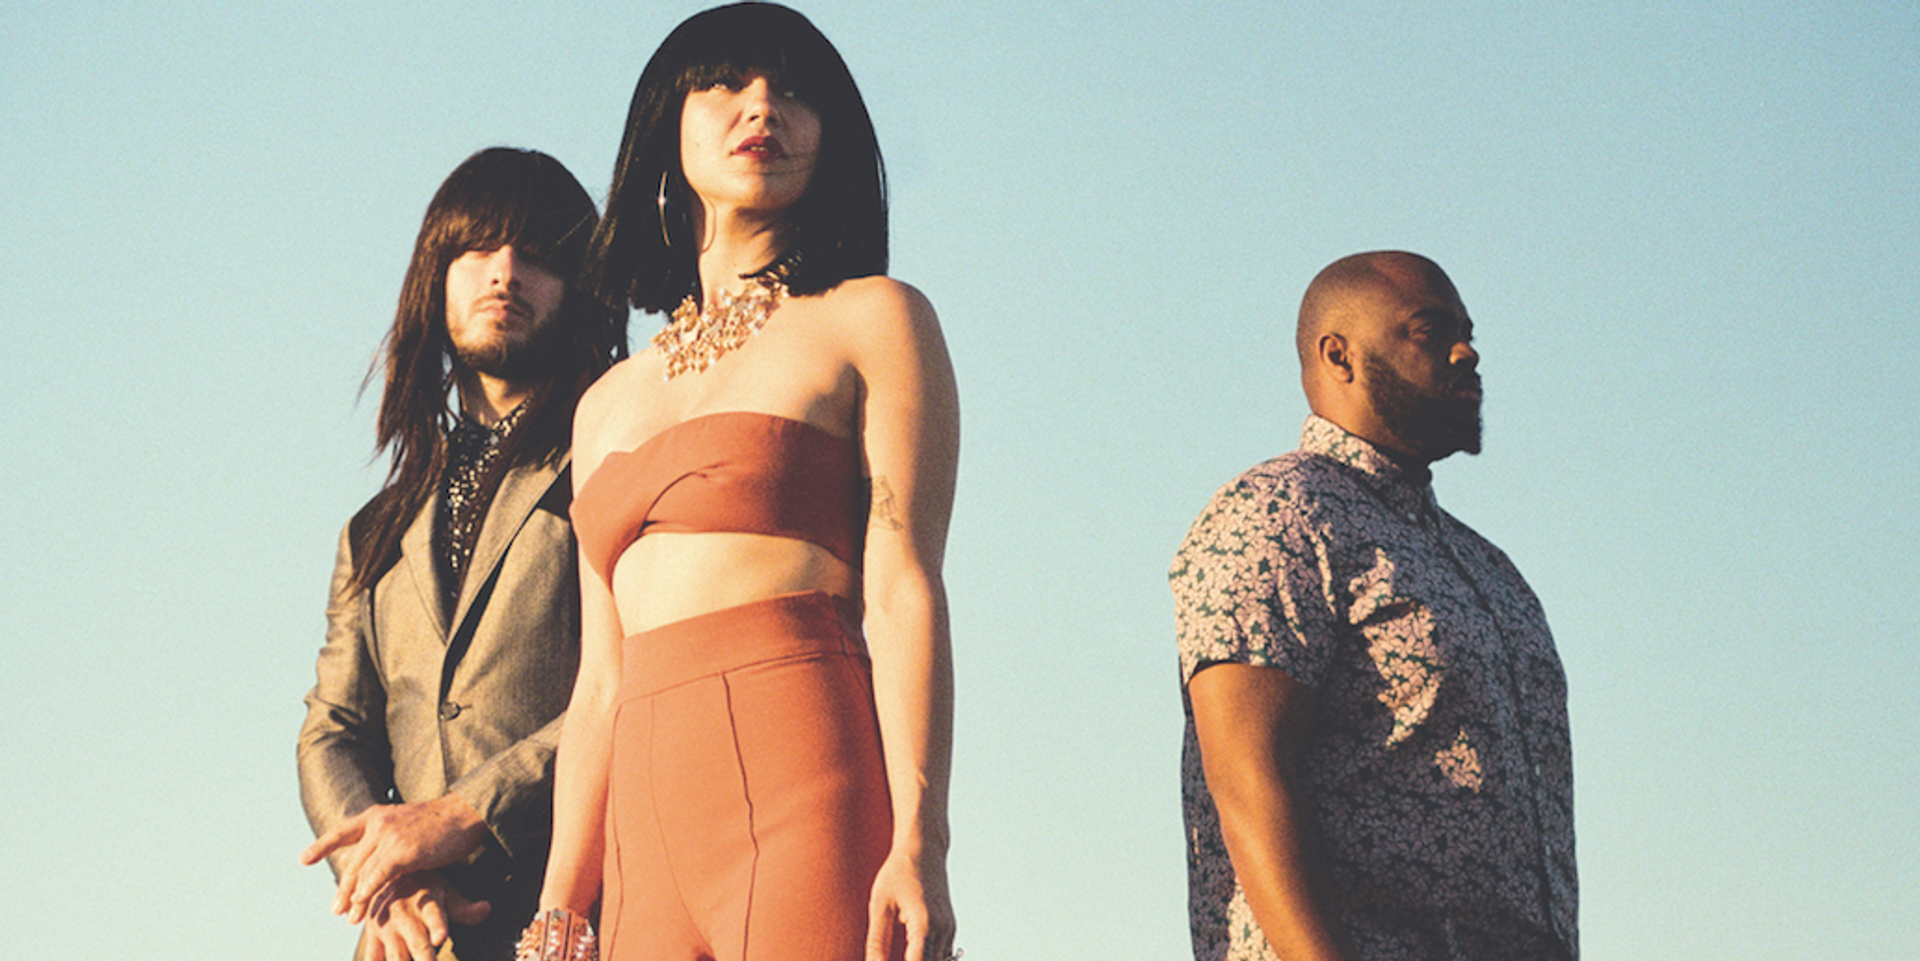 Khruangbin's Singapore show is now sold out